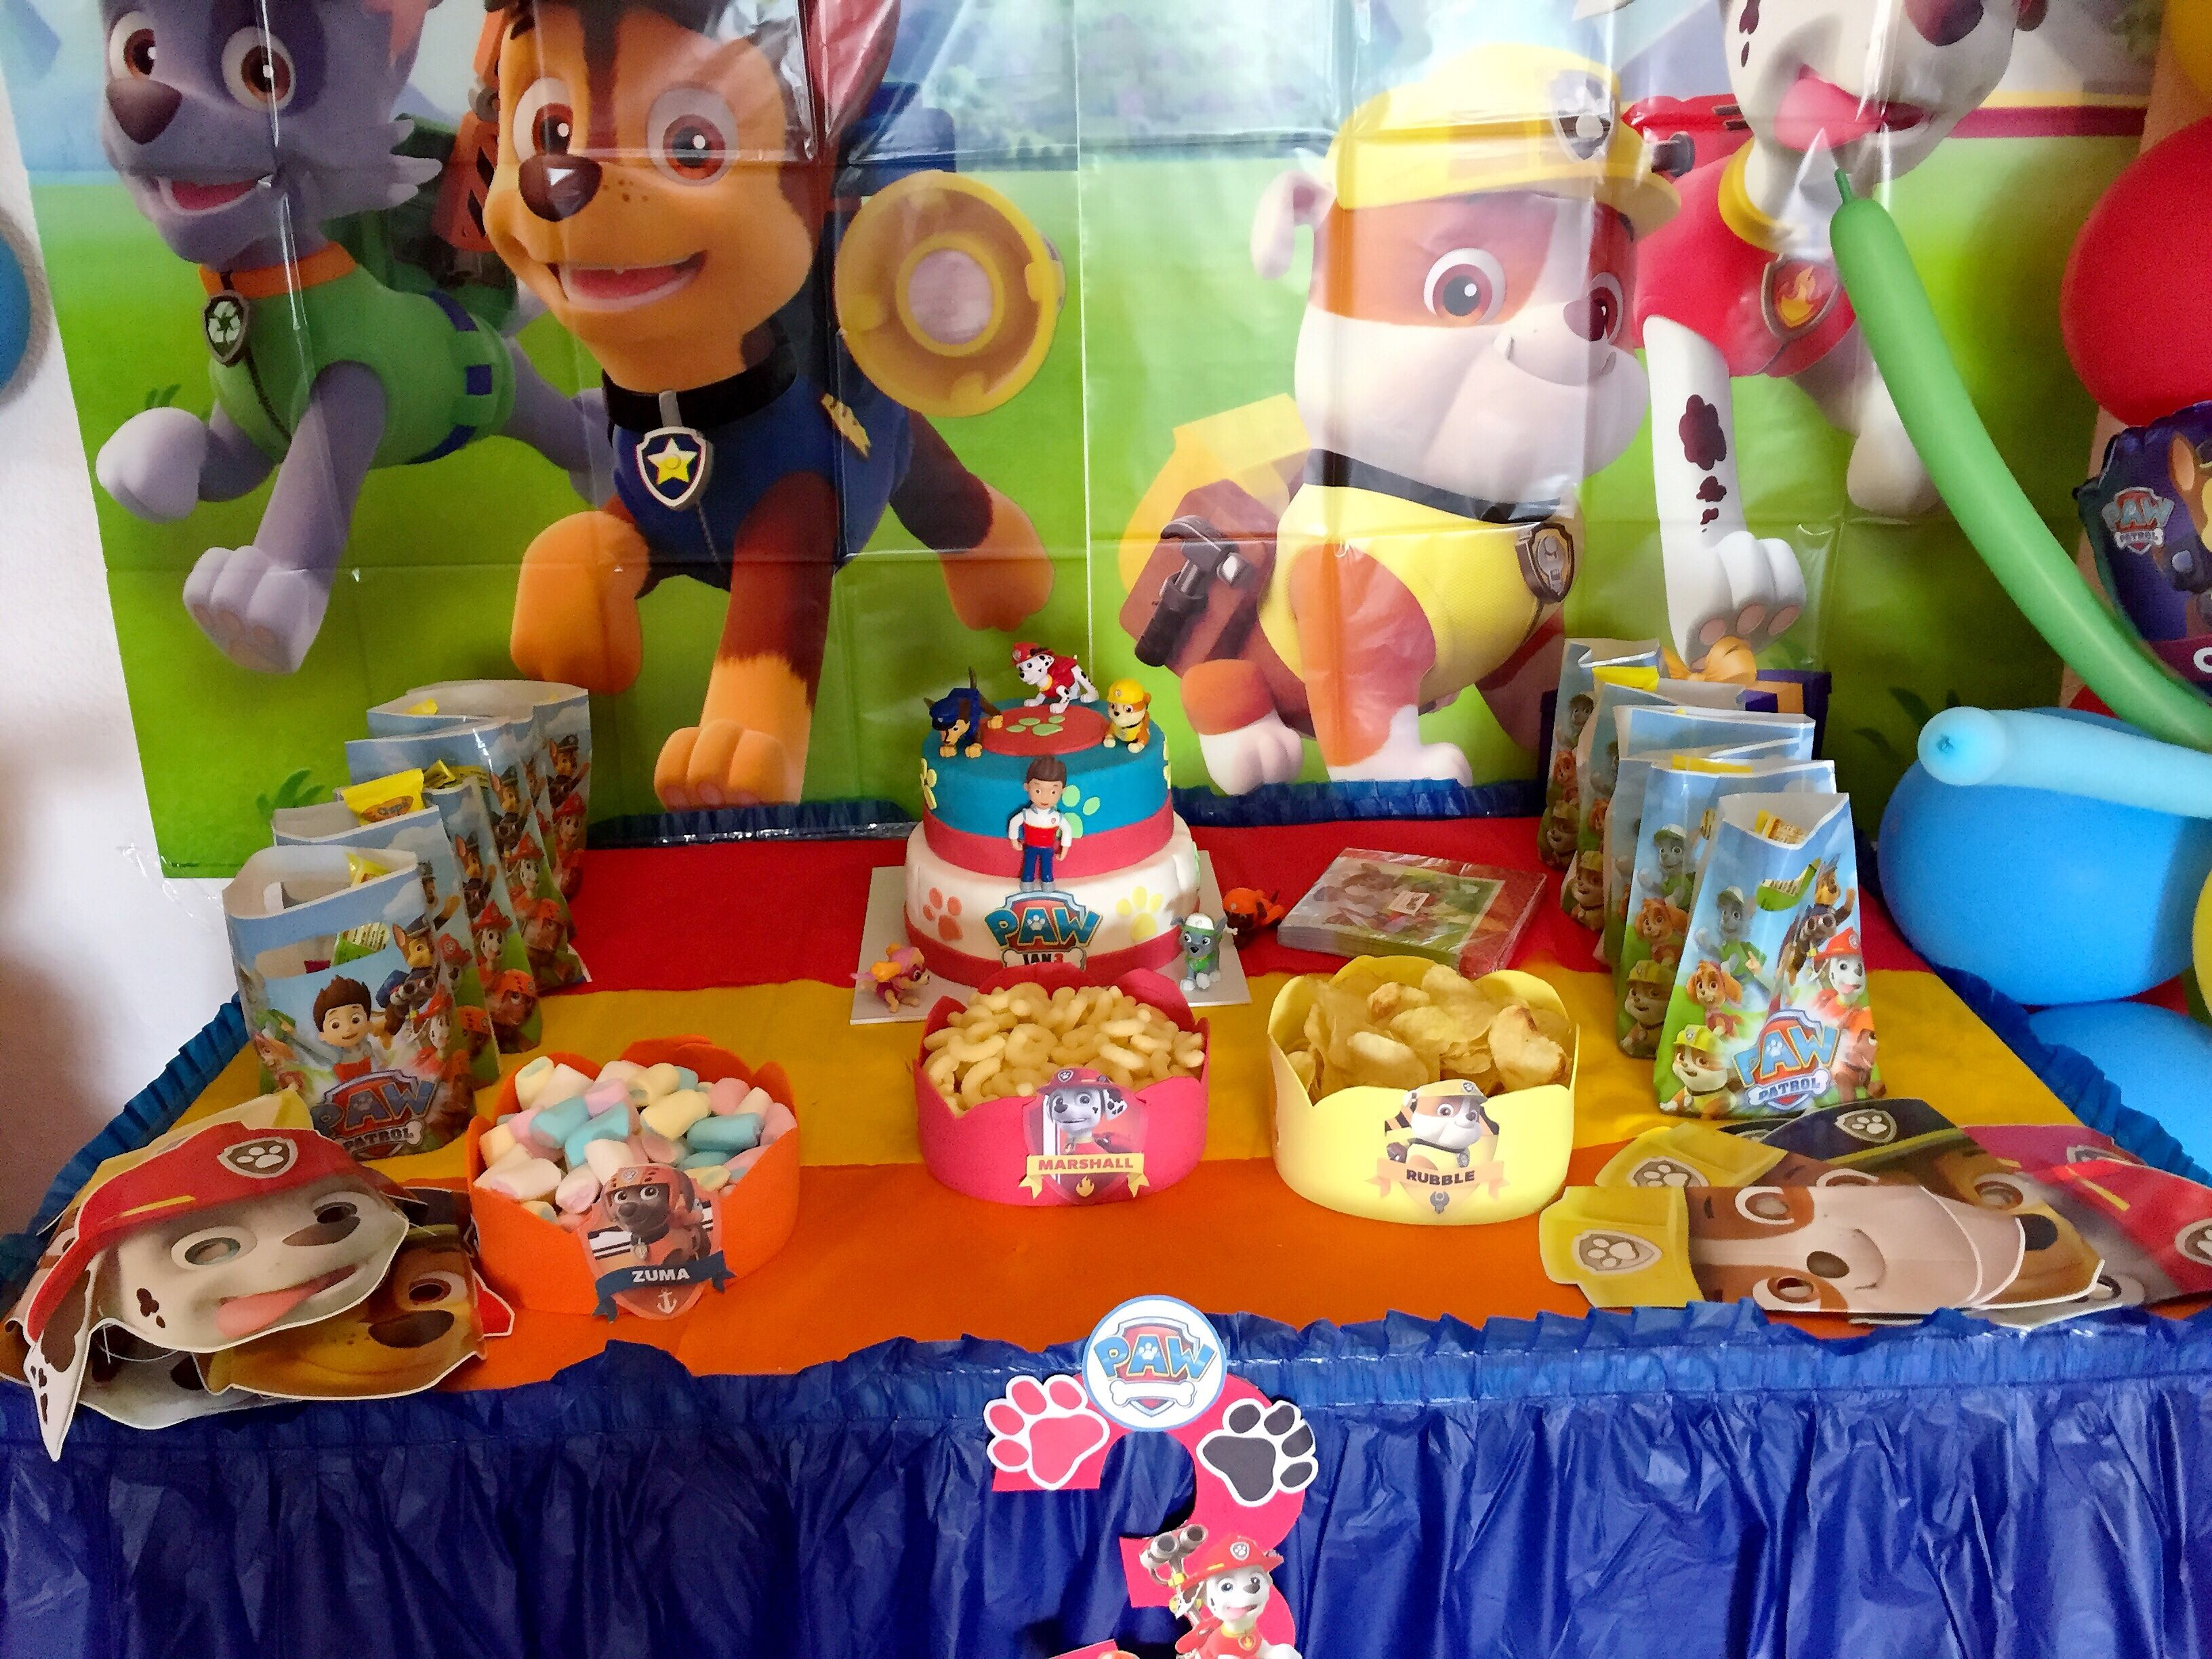 Patrulla canina decoraci n cumplea os infantil ideas paw patrol birthday party decoraci n - Ideas cumpleanos infantiles ...